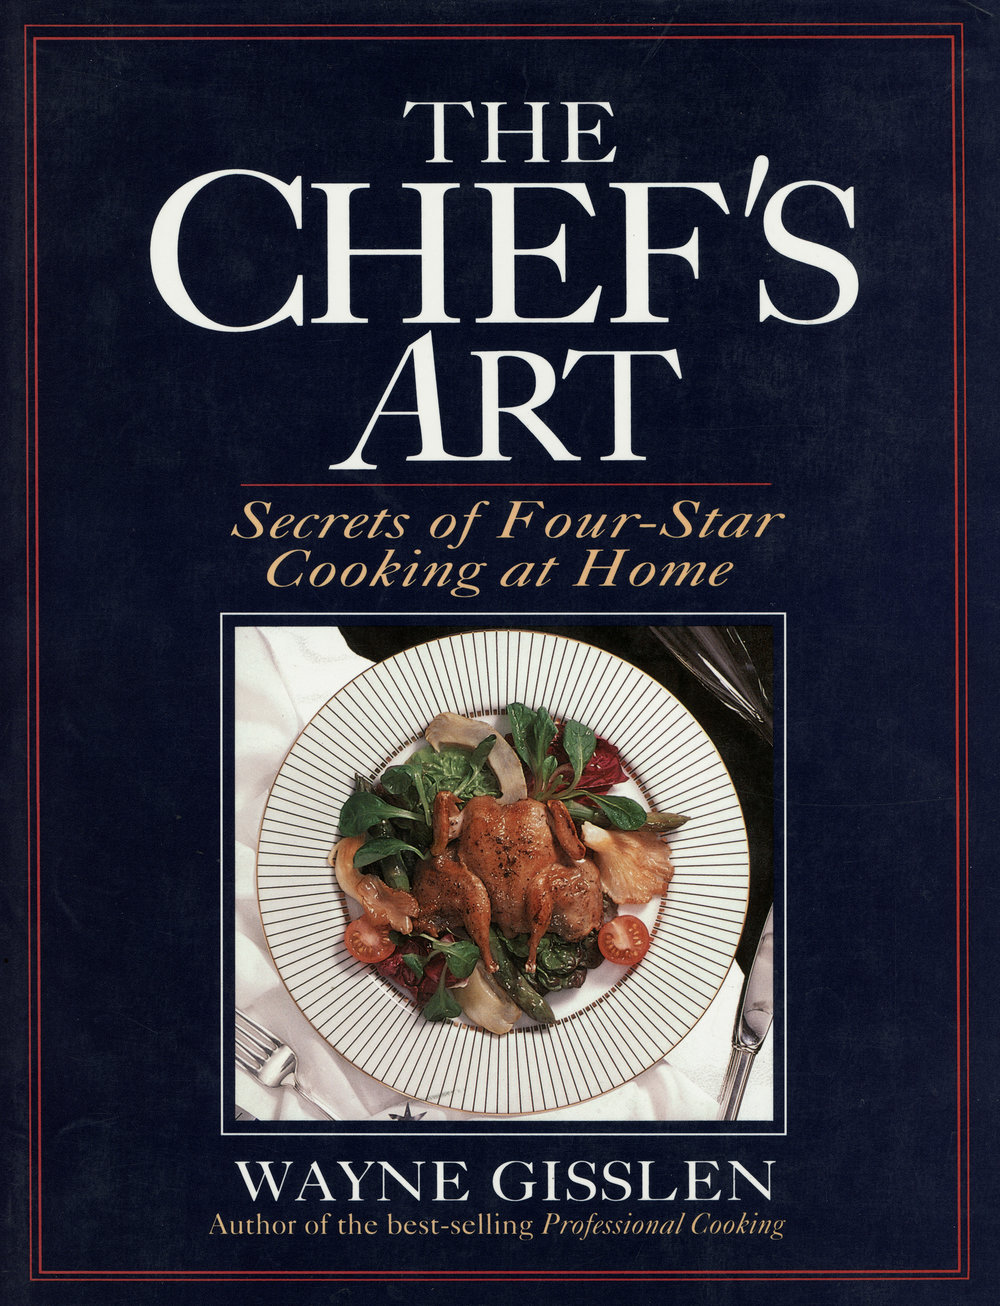 The Chef's Art